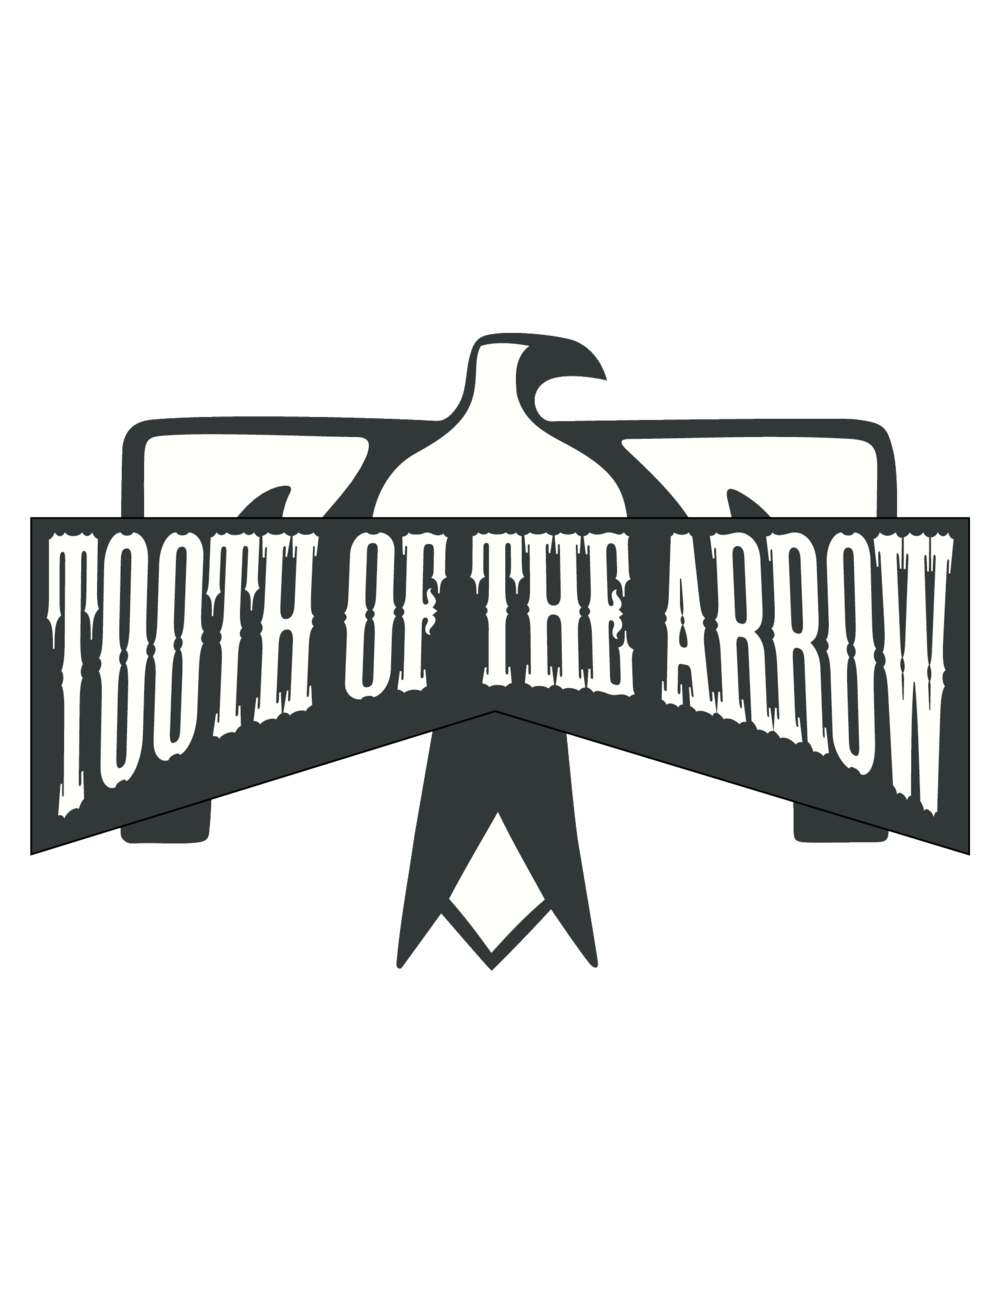 Tooth of the Arrow